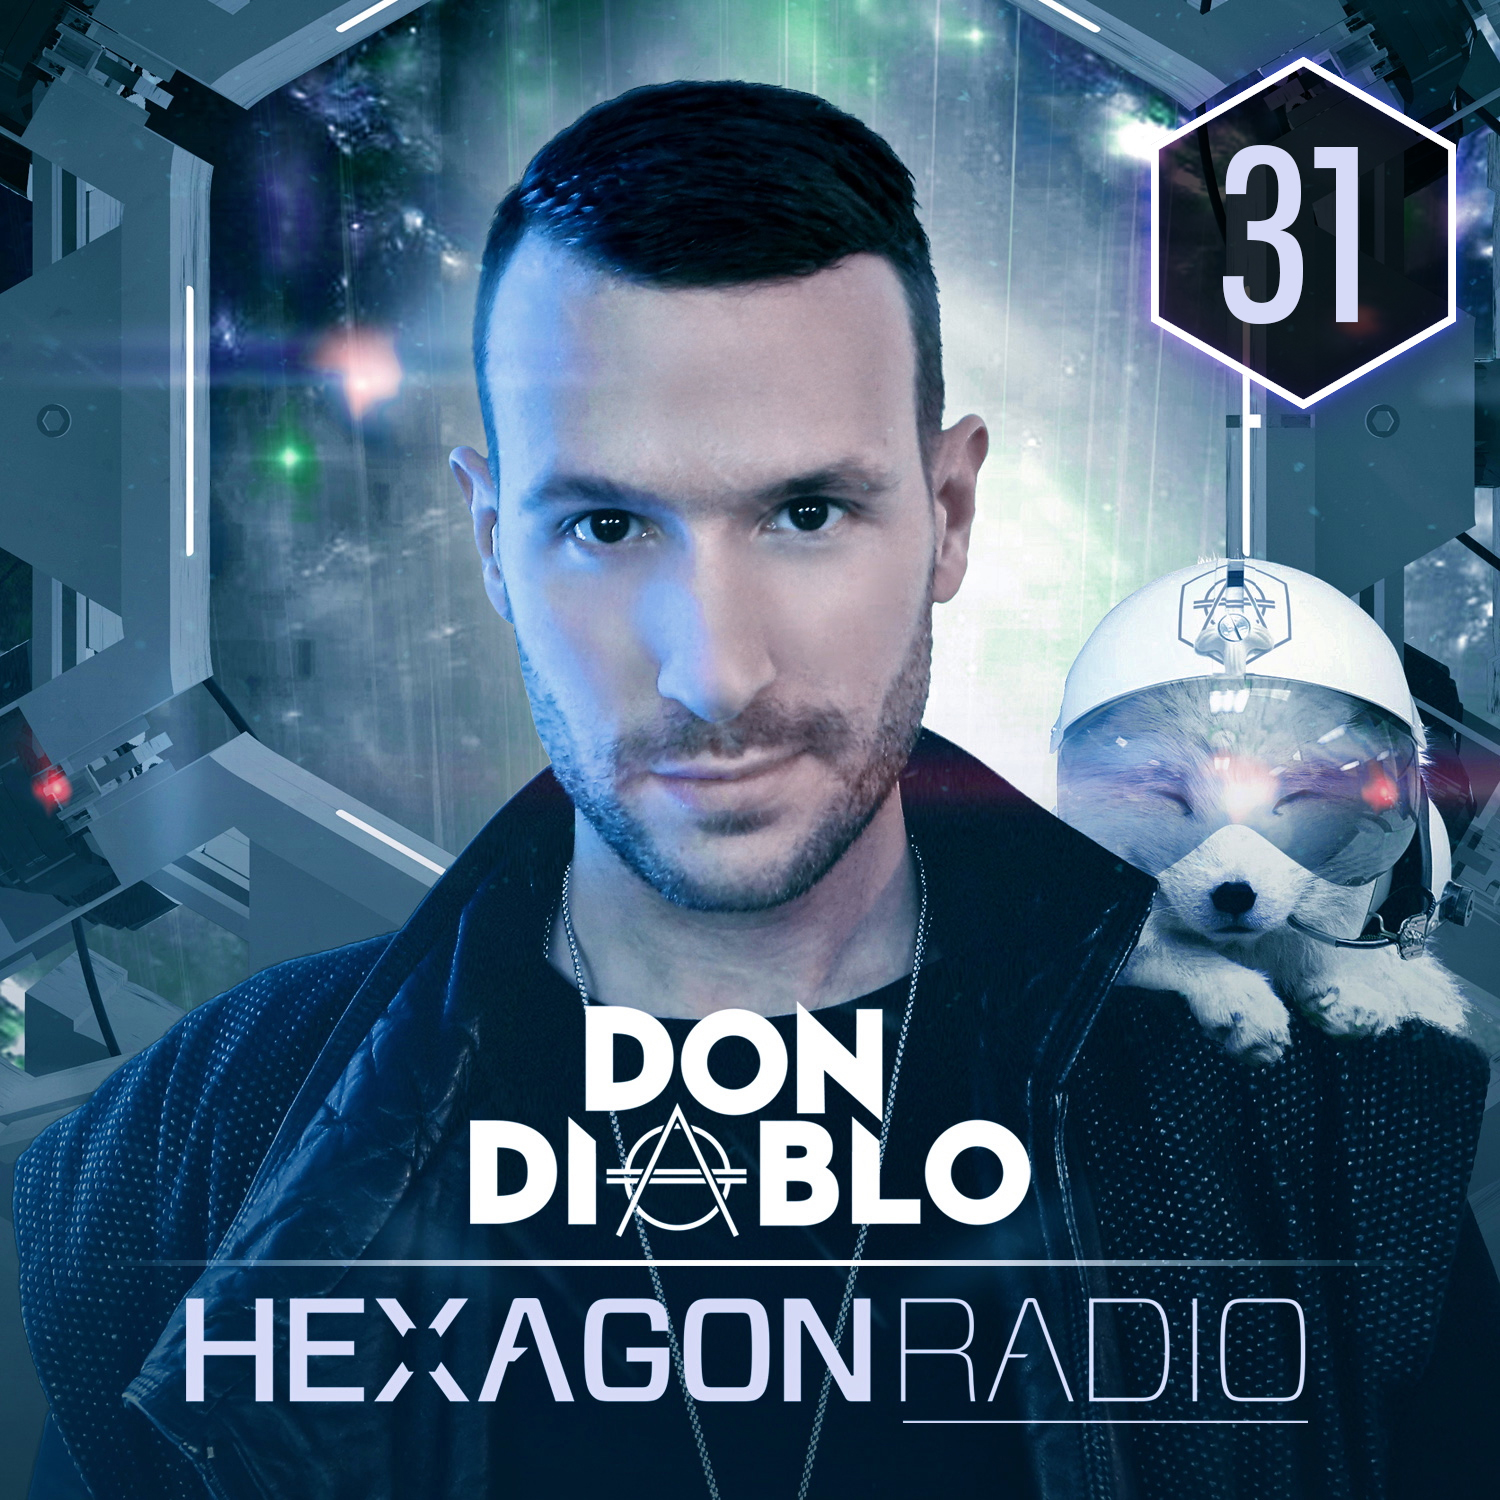 Don Diablo - Hexagon Radio Episode 031